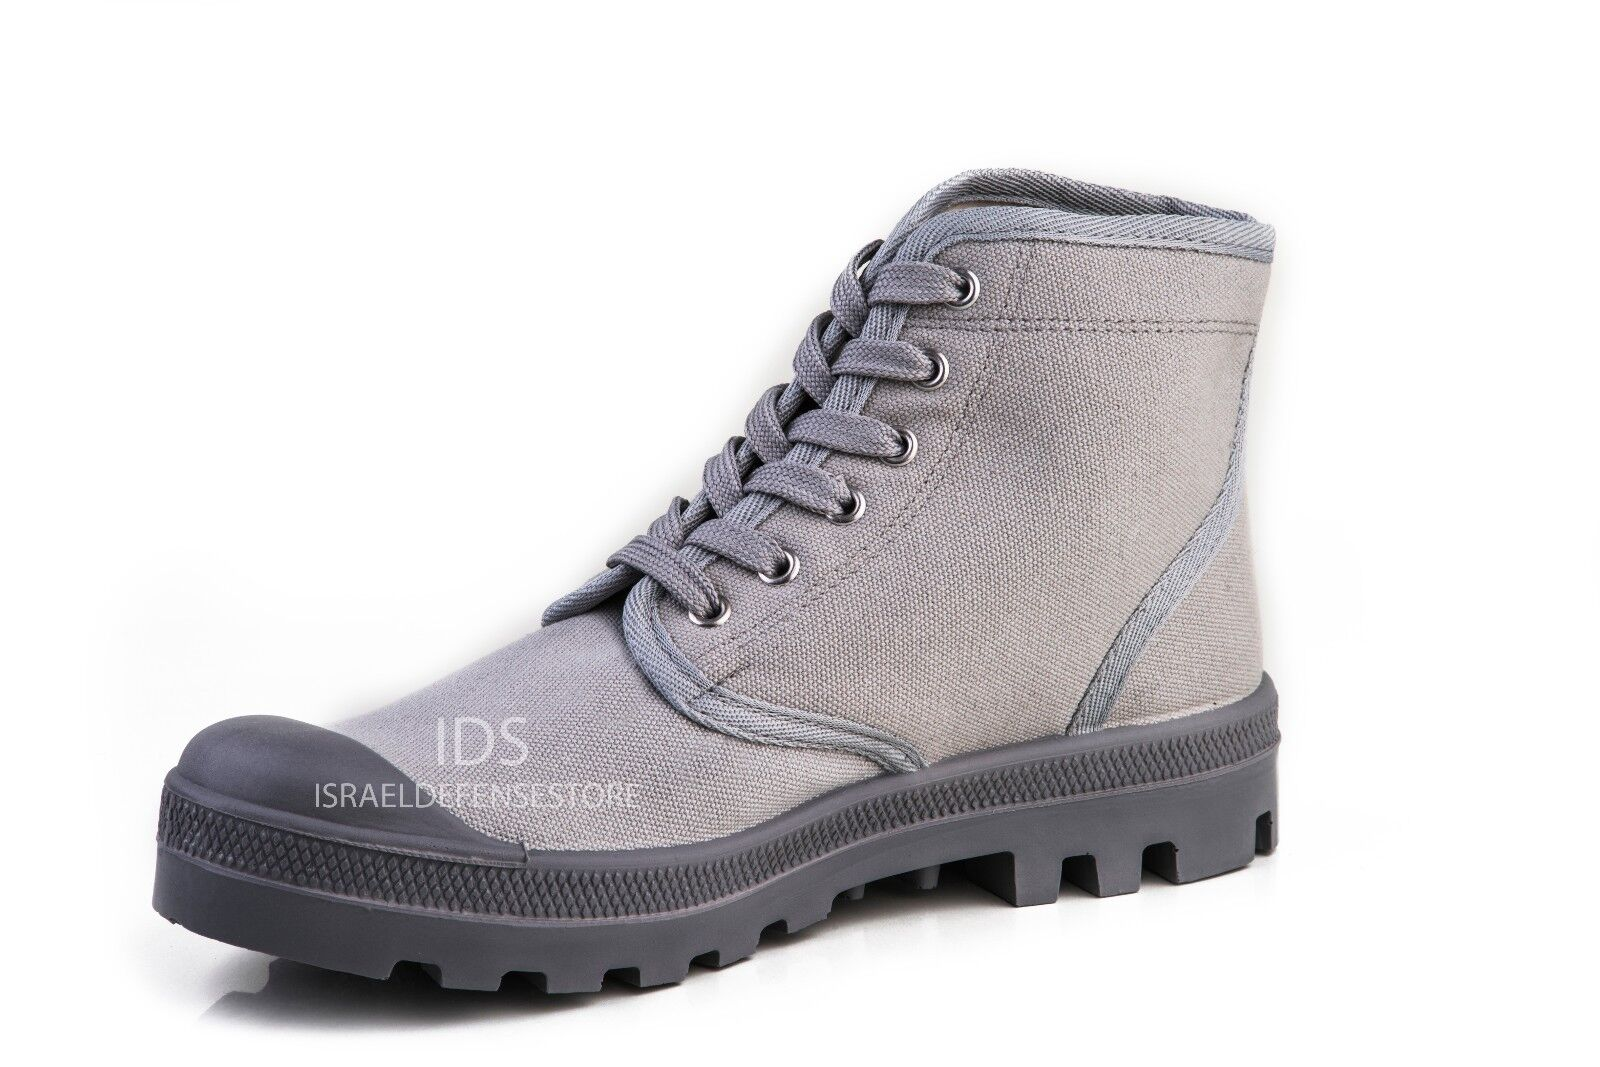 Israel Defense Forces Scout Commando Palladium Style grau VEGAN Stiefel US10 /EU44